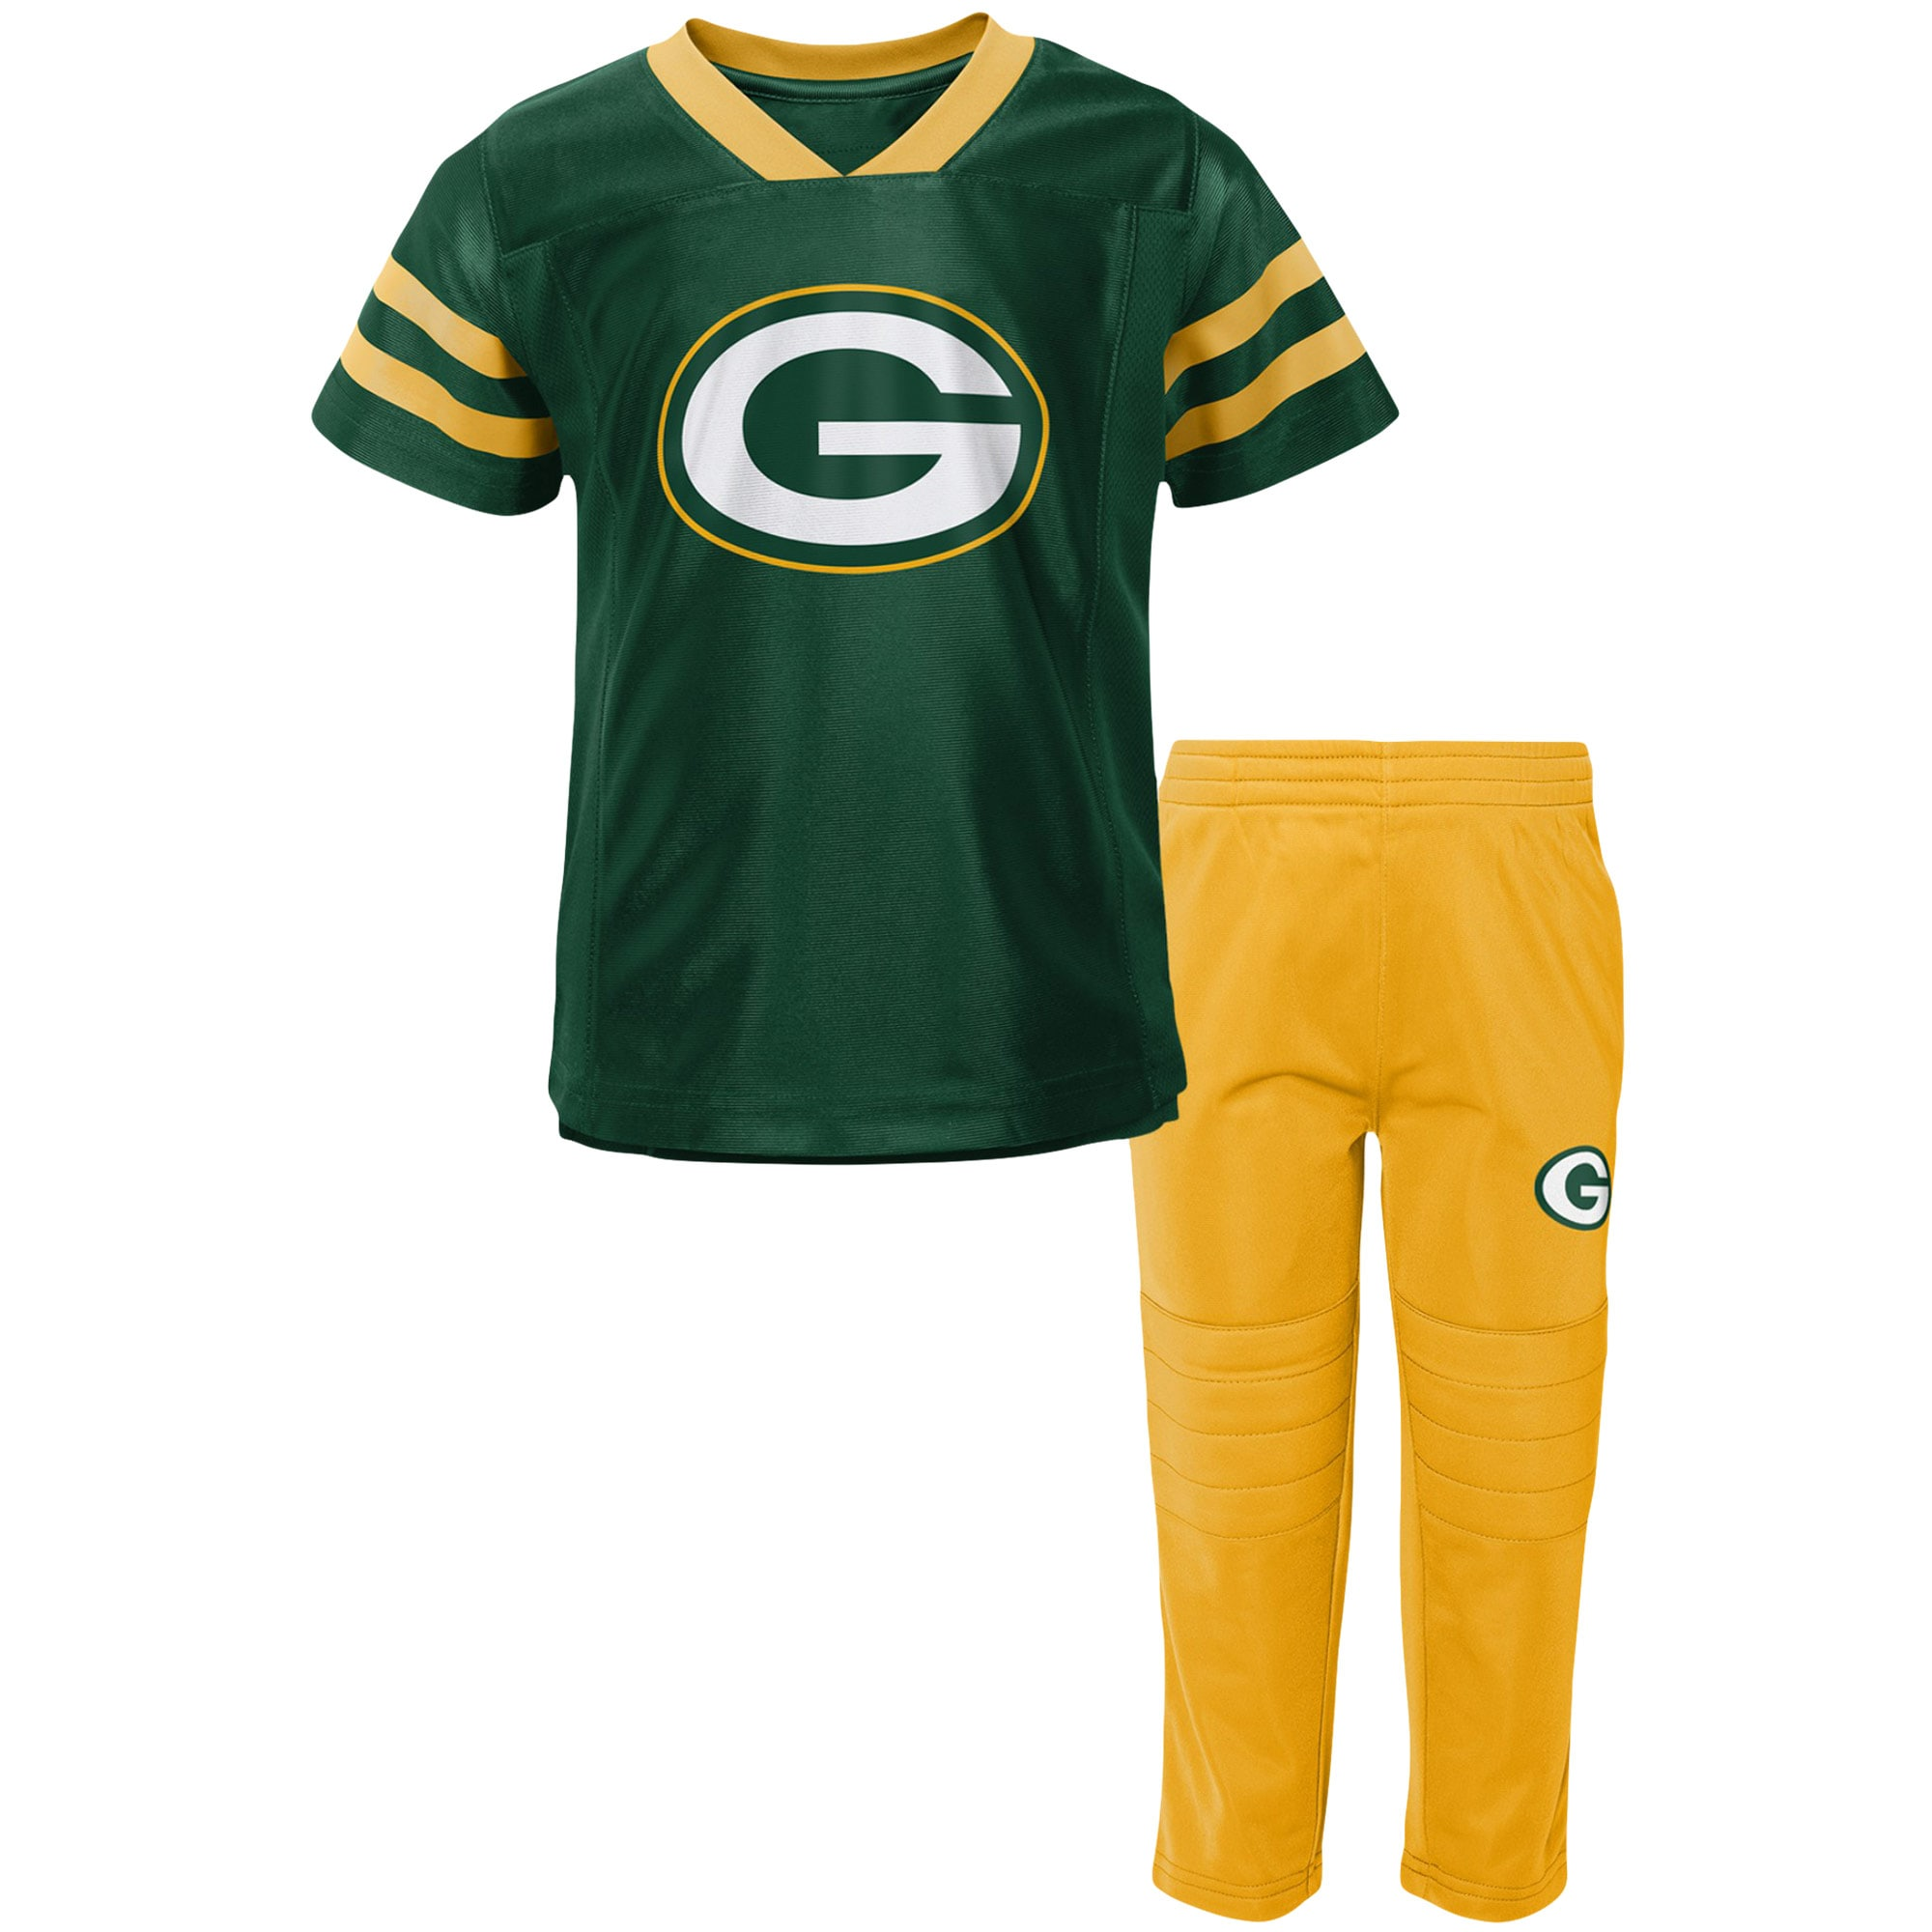 Green Bay Packers Toddler Training Camp V-Neck T-Shirt & Pants Set - Green/Gold